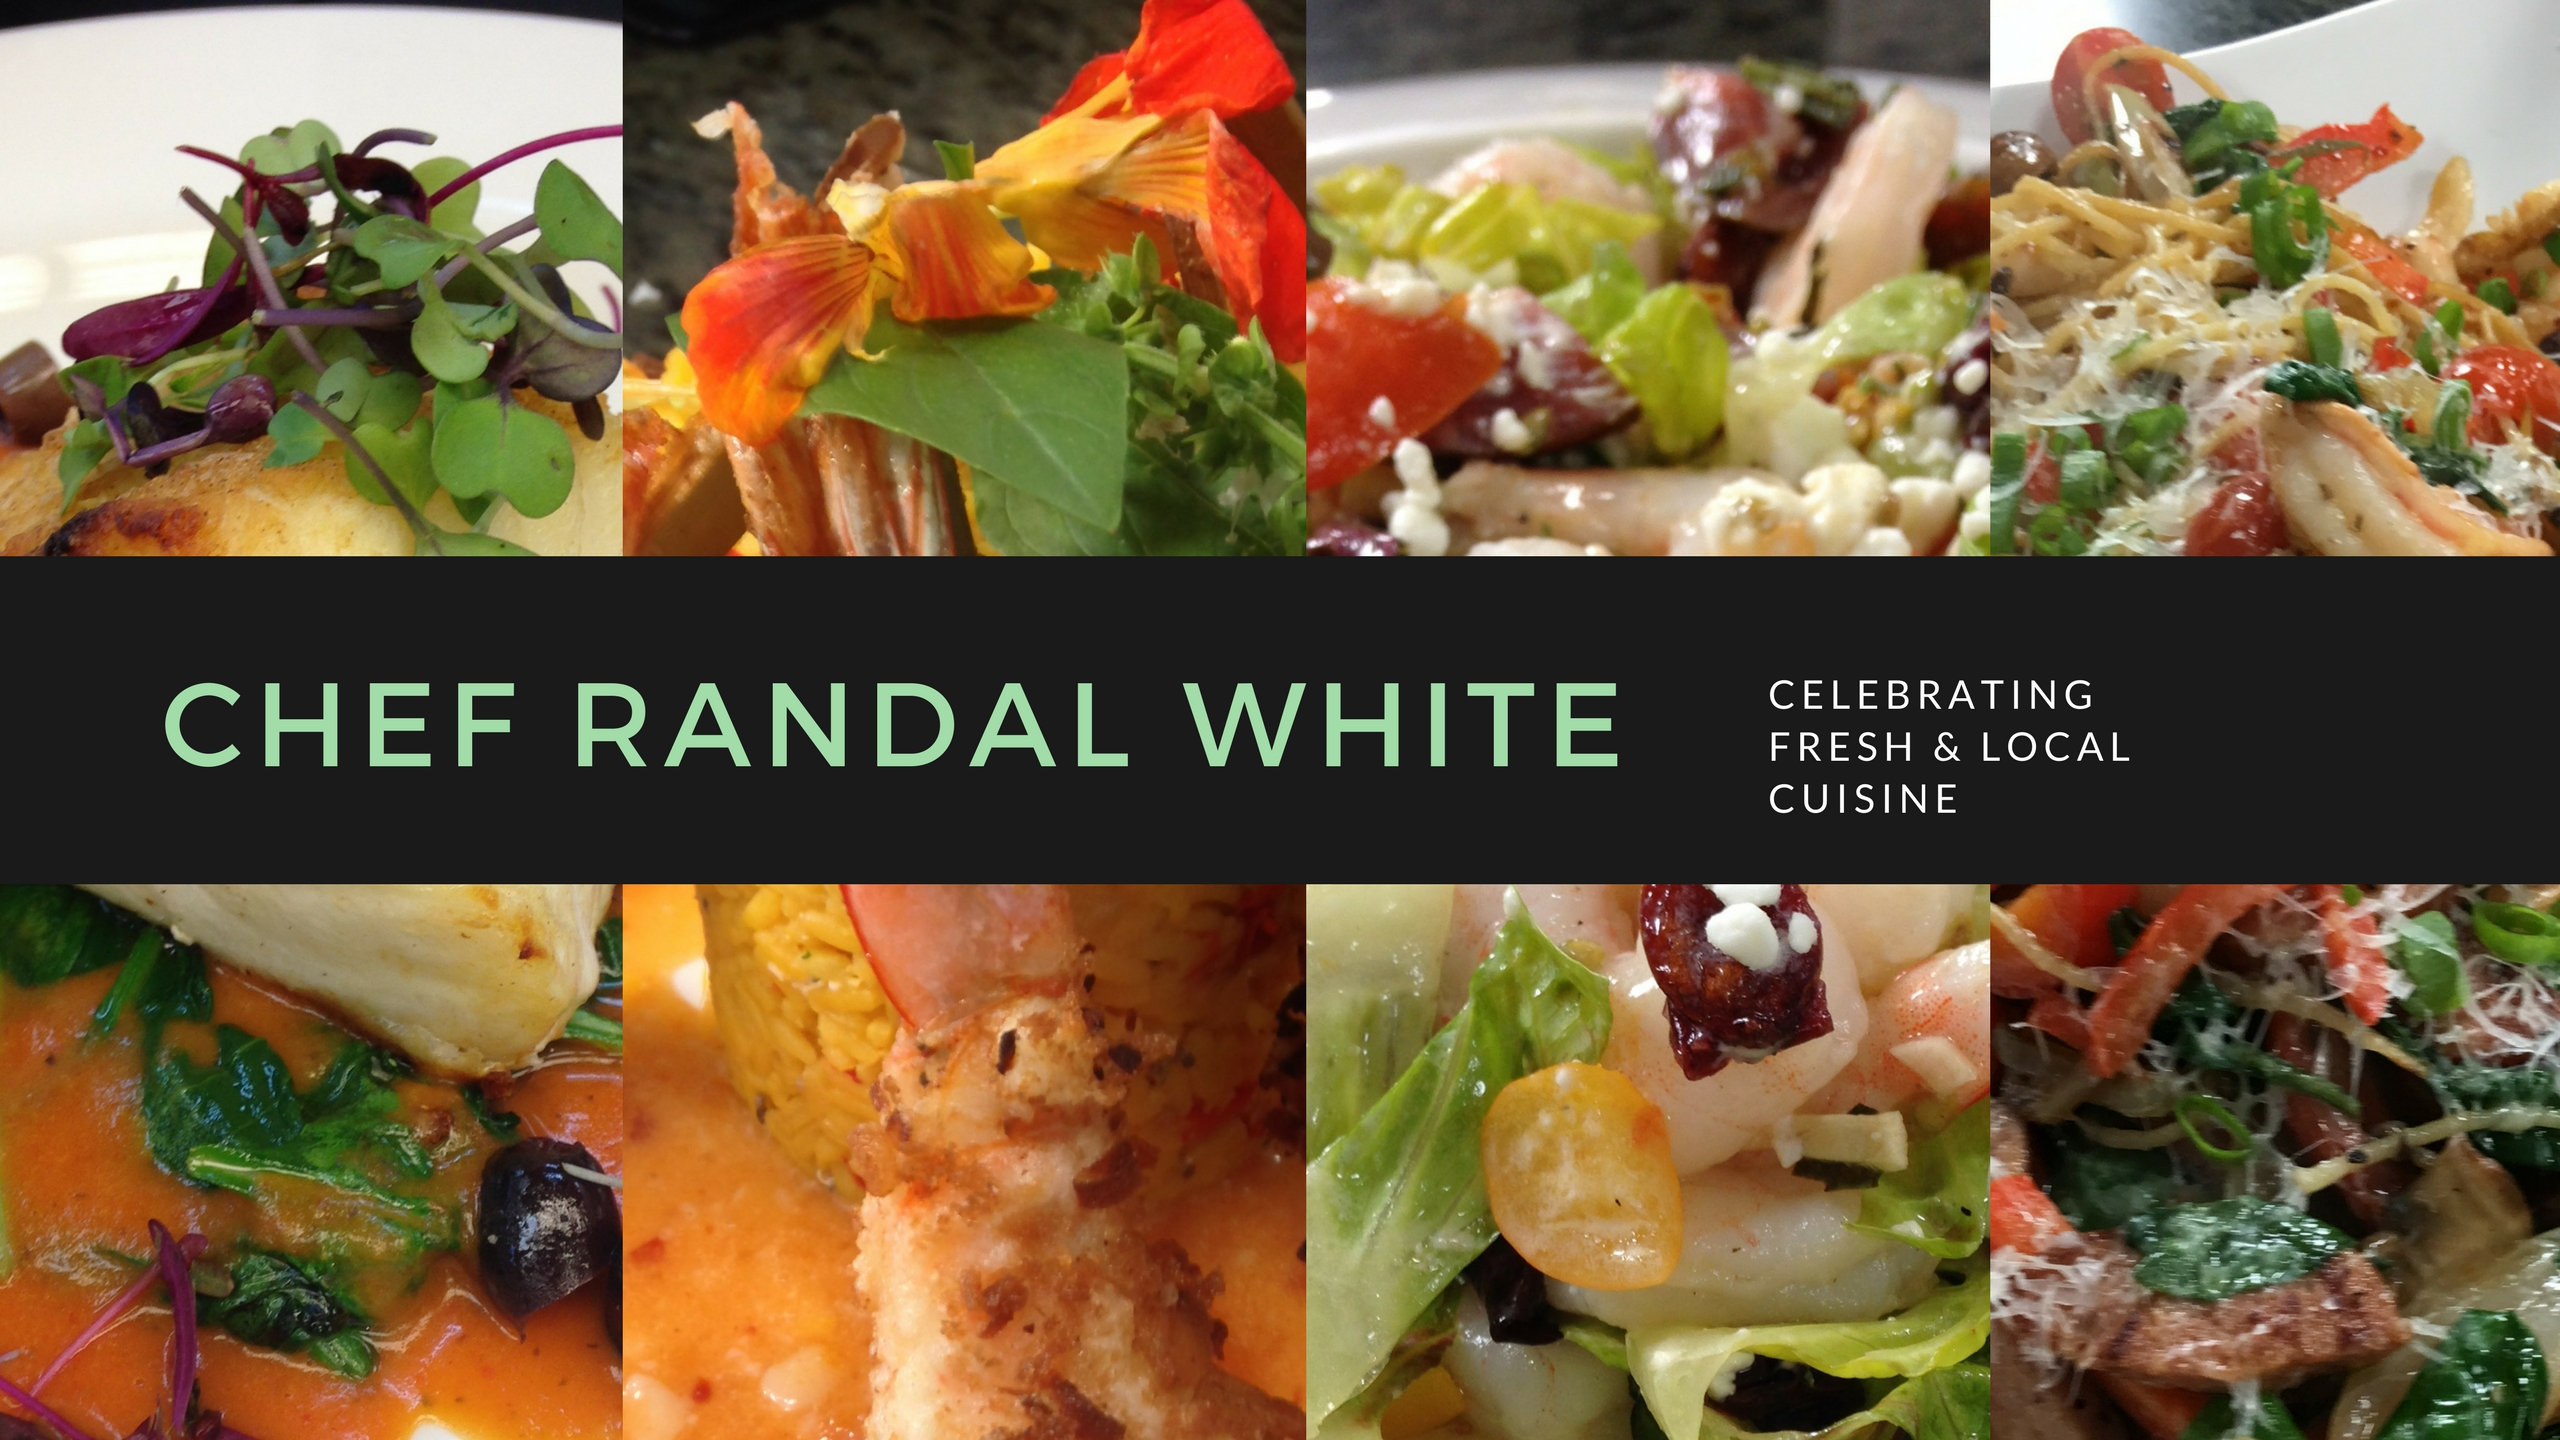 Chef Randal White https://chefrandalwhite.com